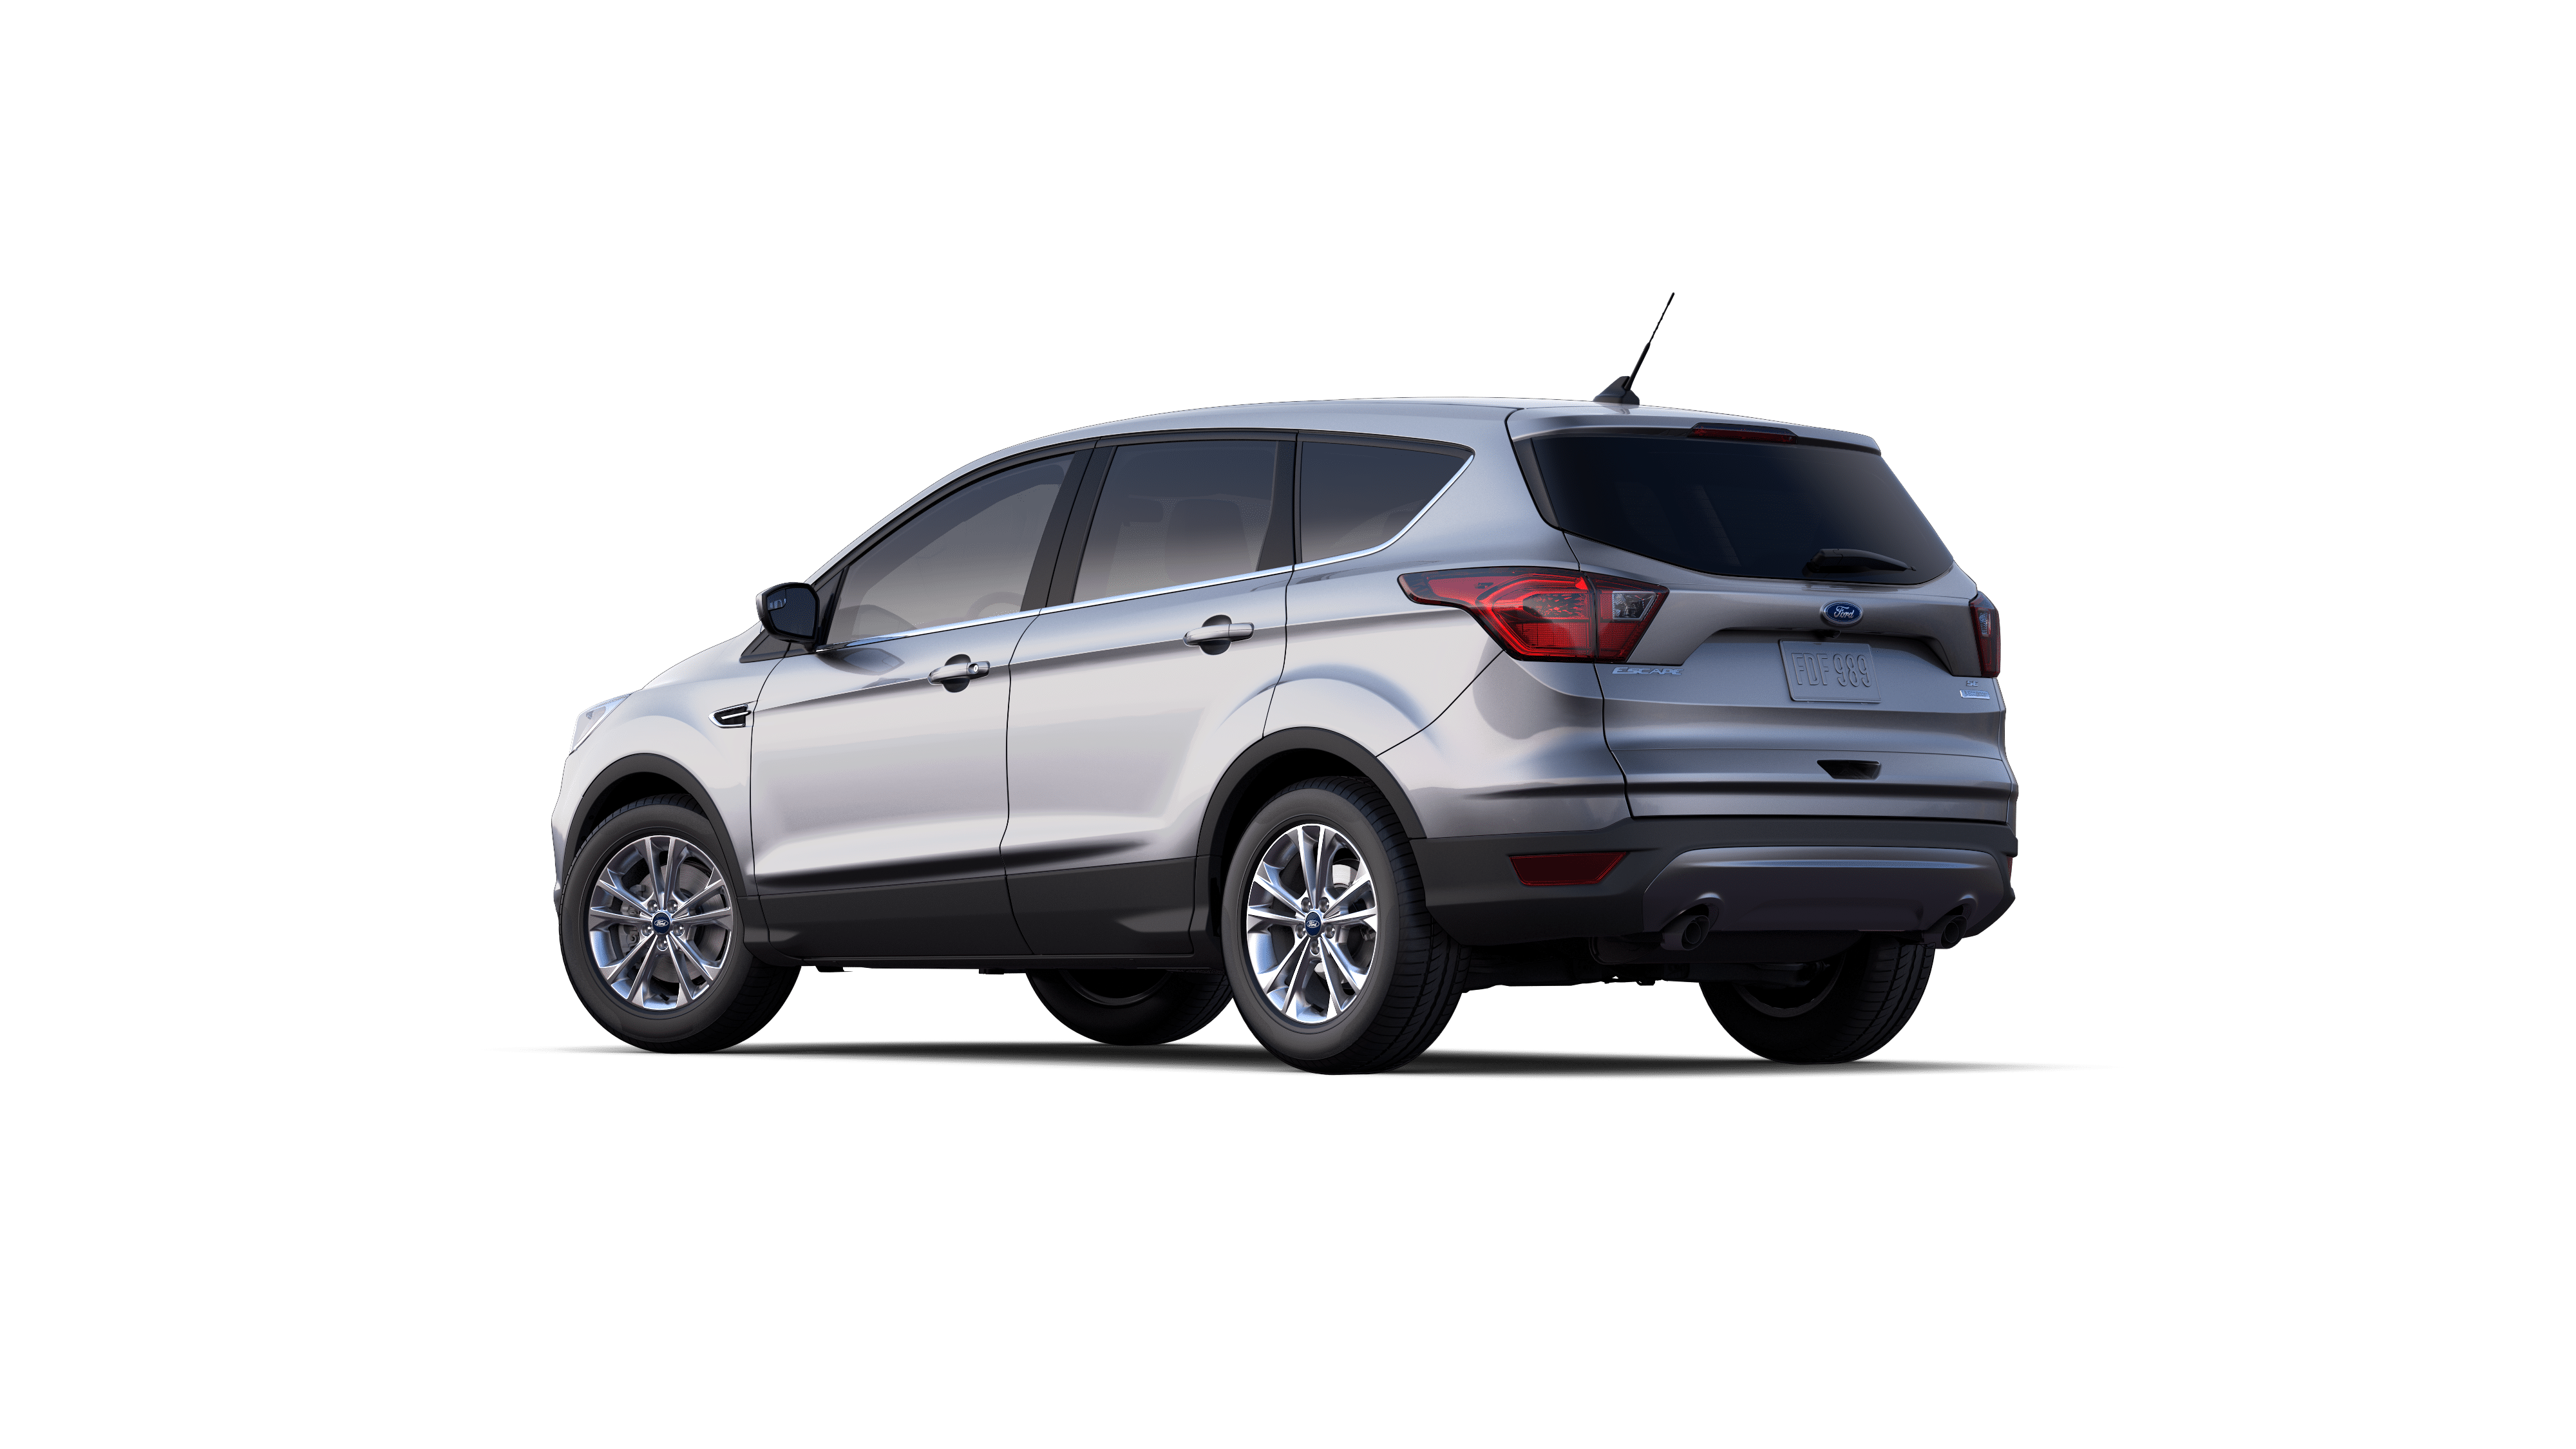 Crain Ford Little Rock >> 2019 Ford Escape for sale in Little Rock, near Benton, Bryant, Cabot, Sherwood, AR - 9FT5943 - Crain